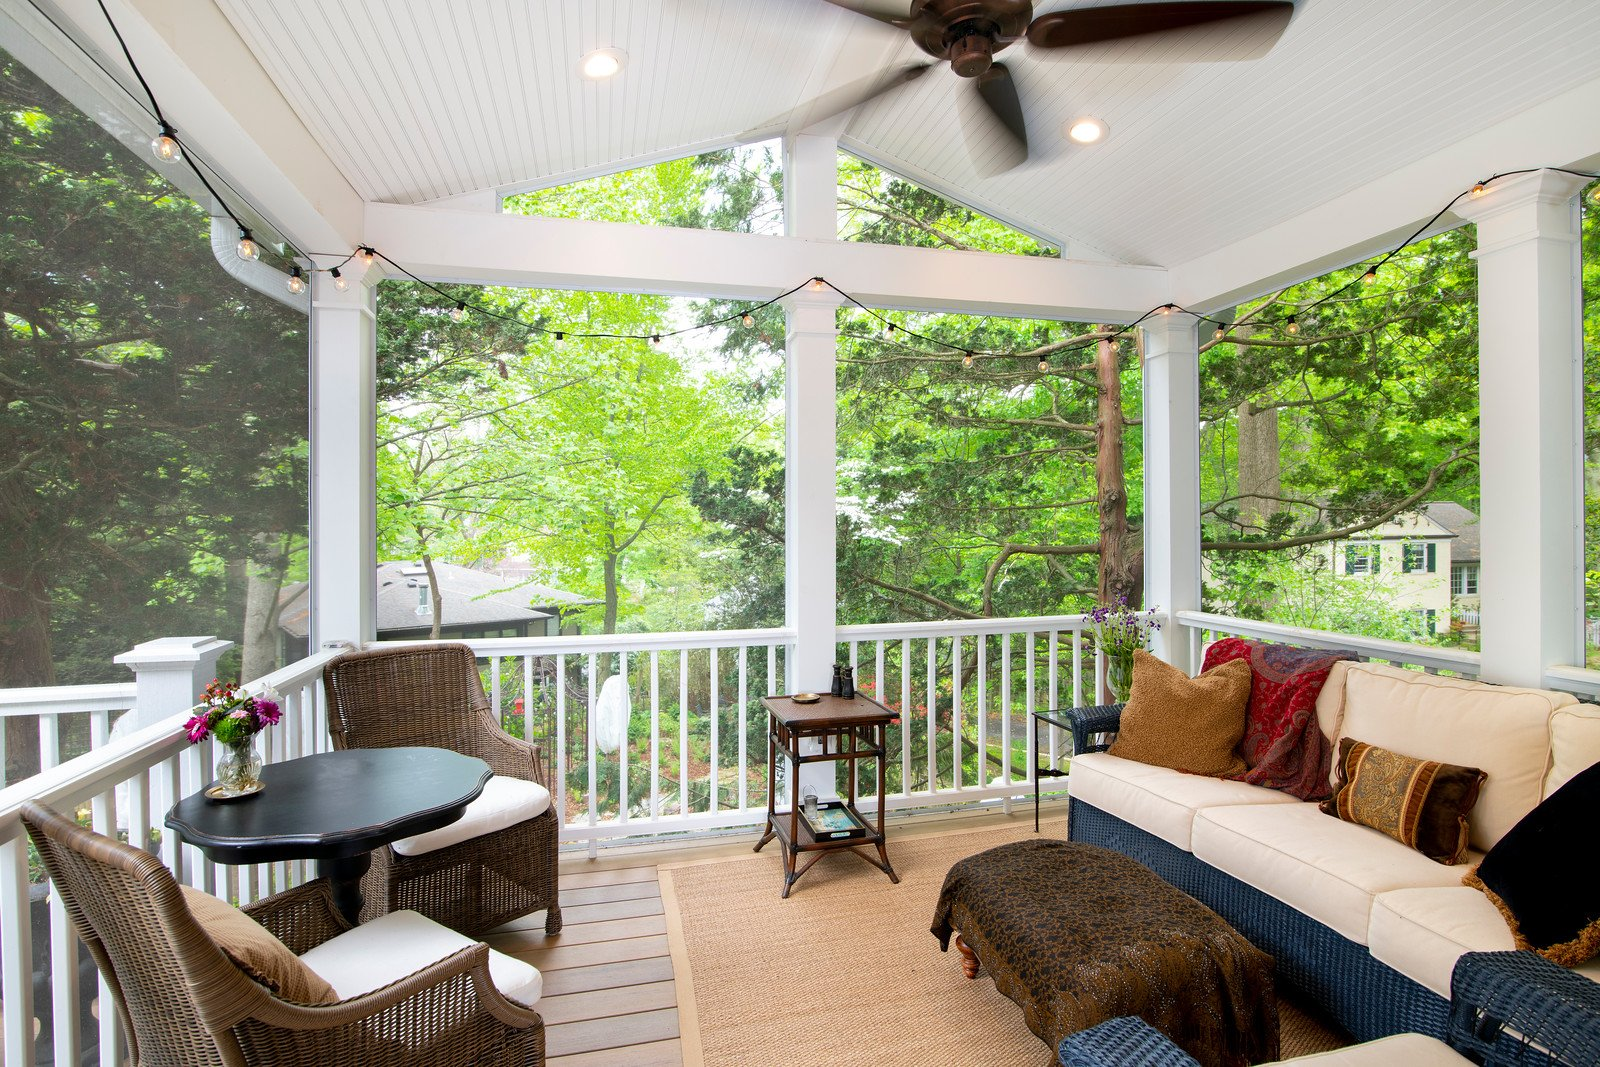 chevy chase 2 story deck screened porch. 14